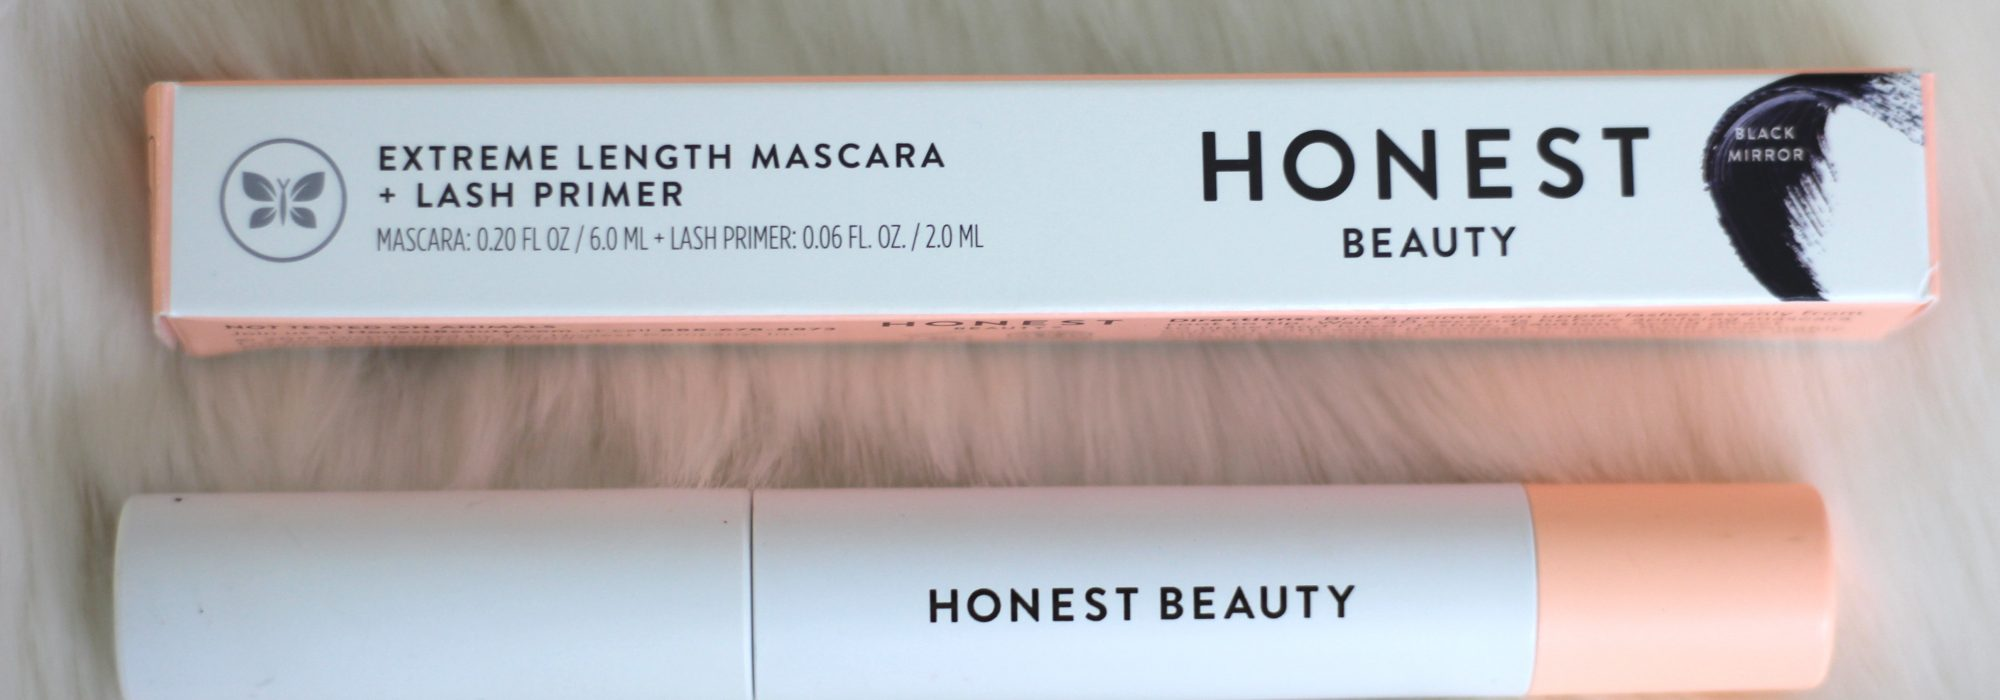 Honest Beauty Extreme Length Mascara + Lash Primer Review